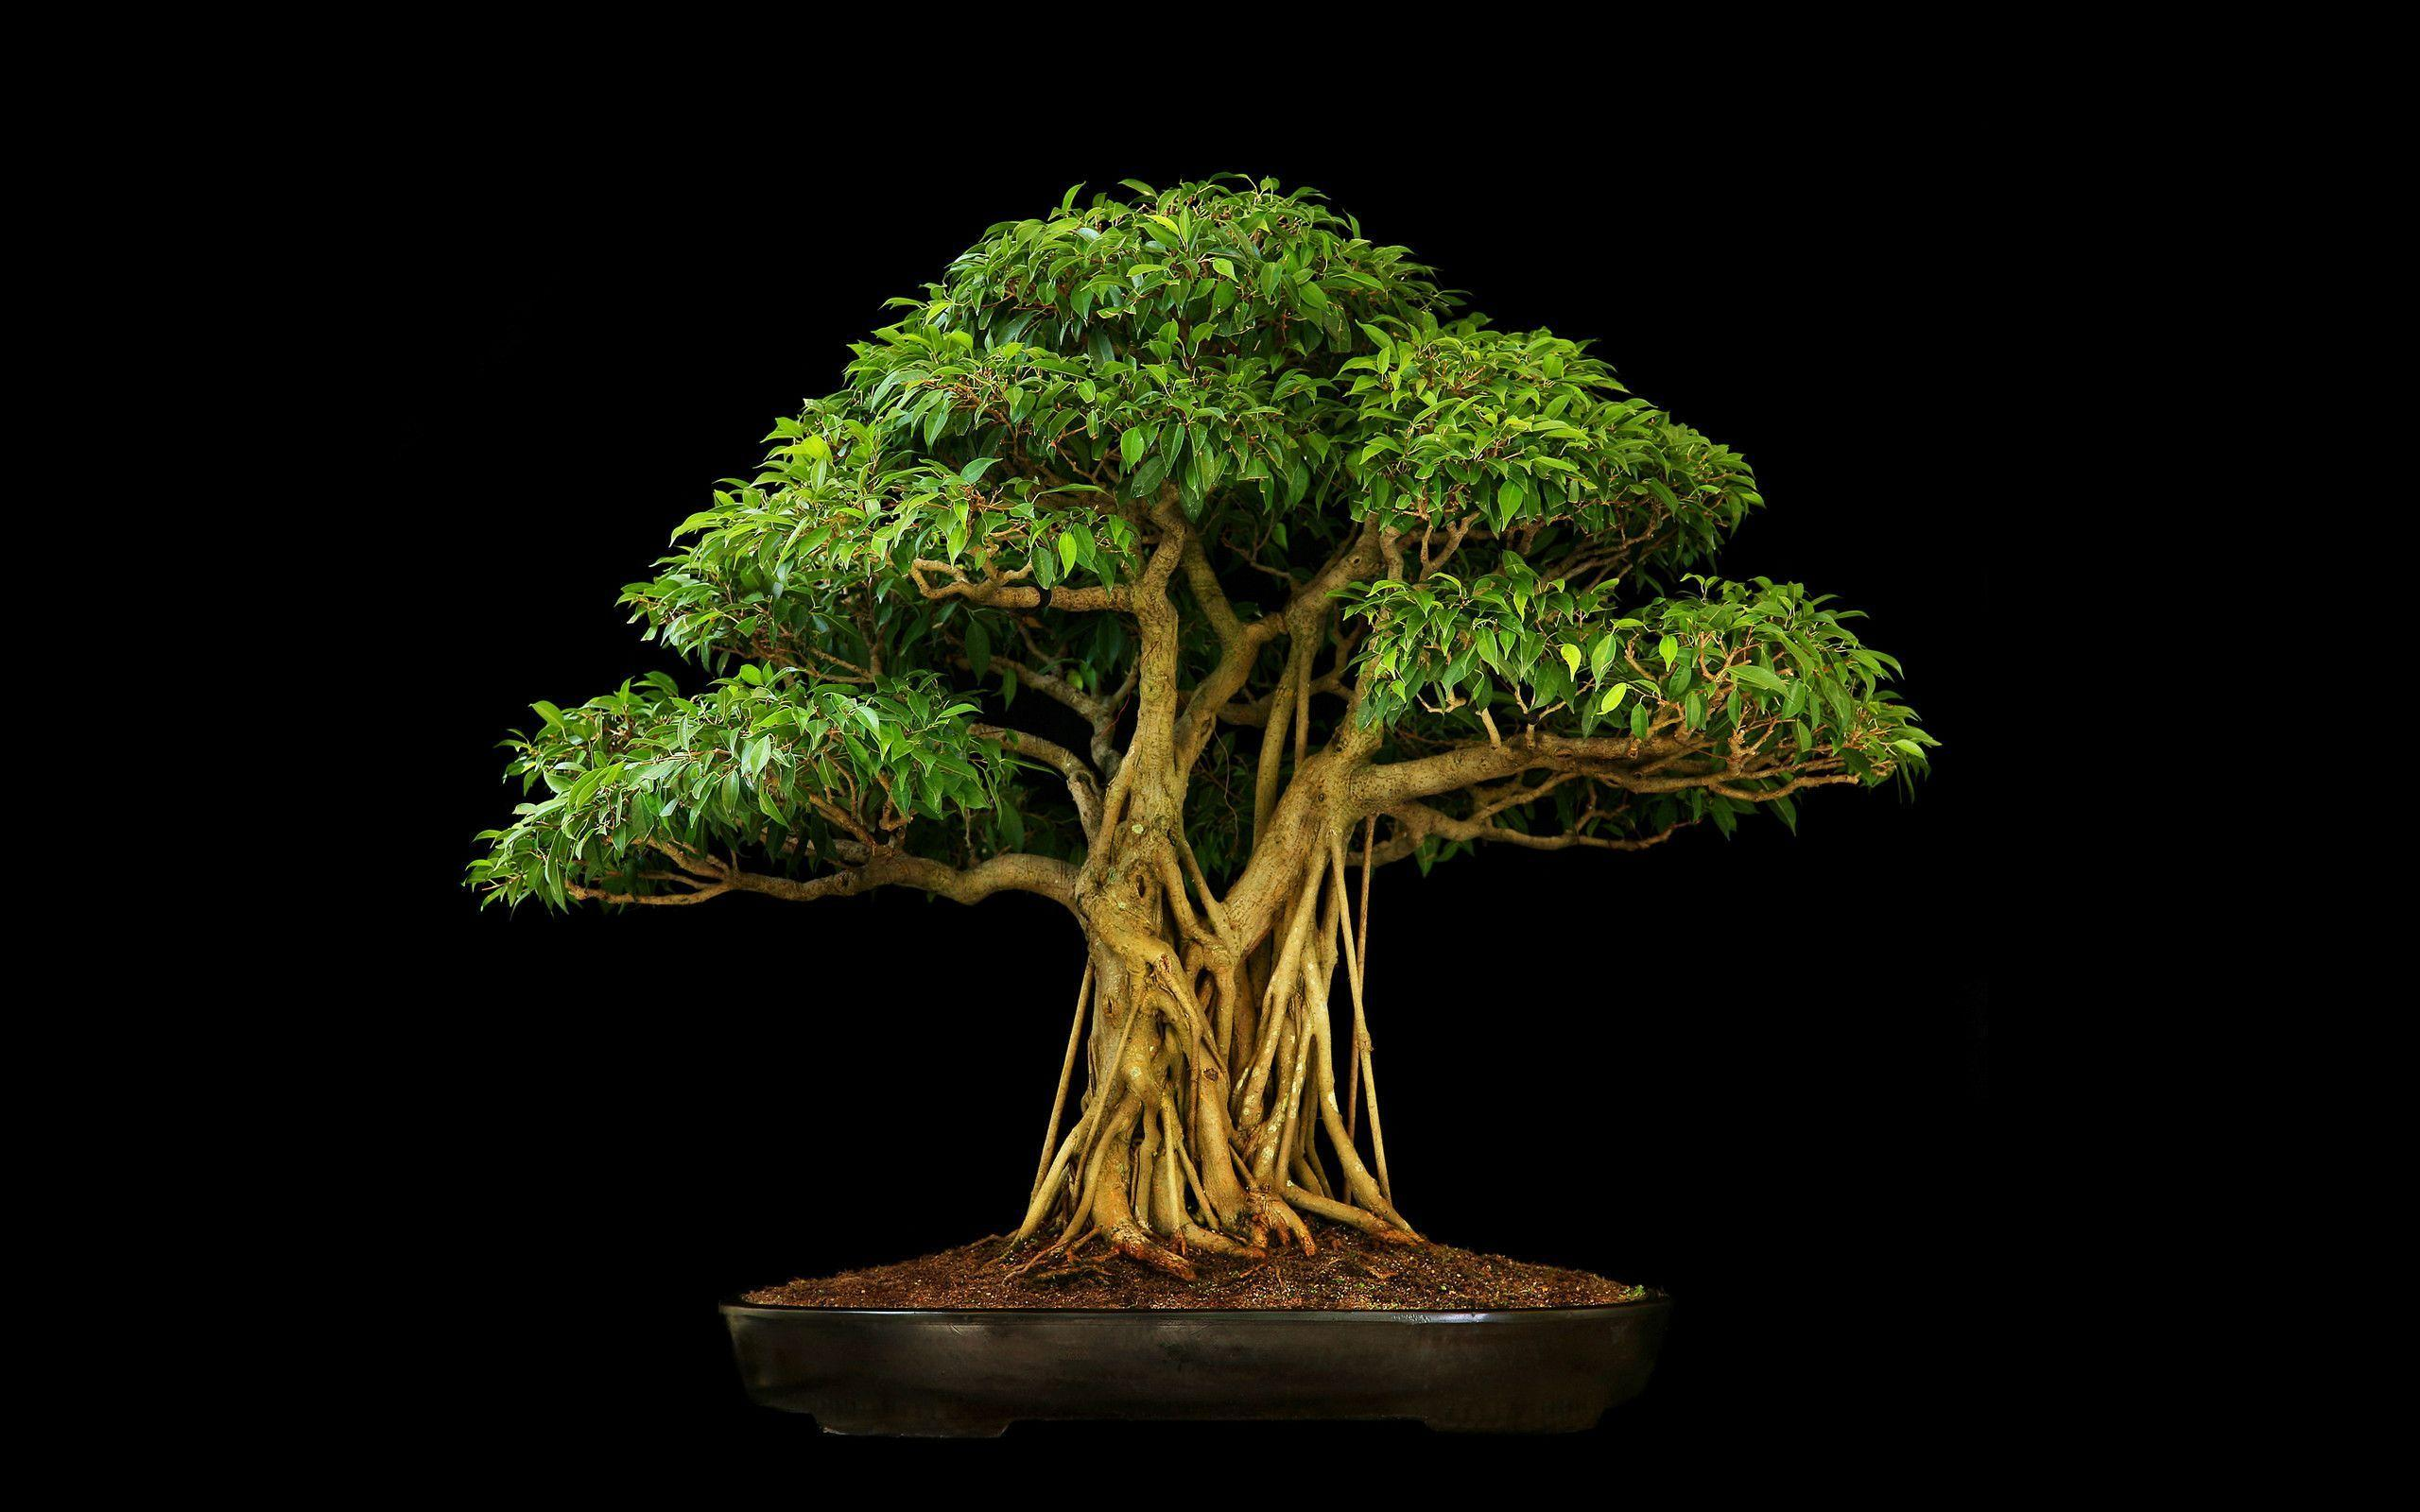 Tree Bonsai Tree Black leaves wallpaper | 2560x1600 | 67907 ...